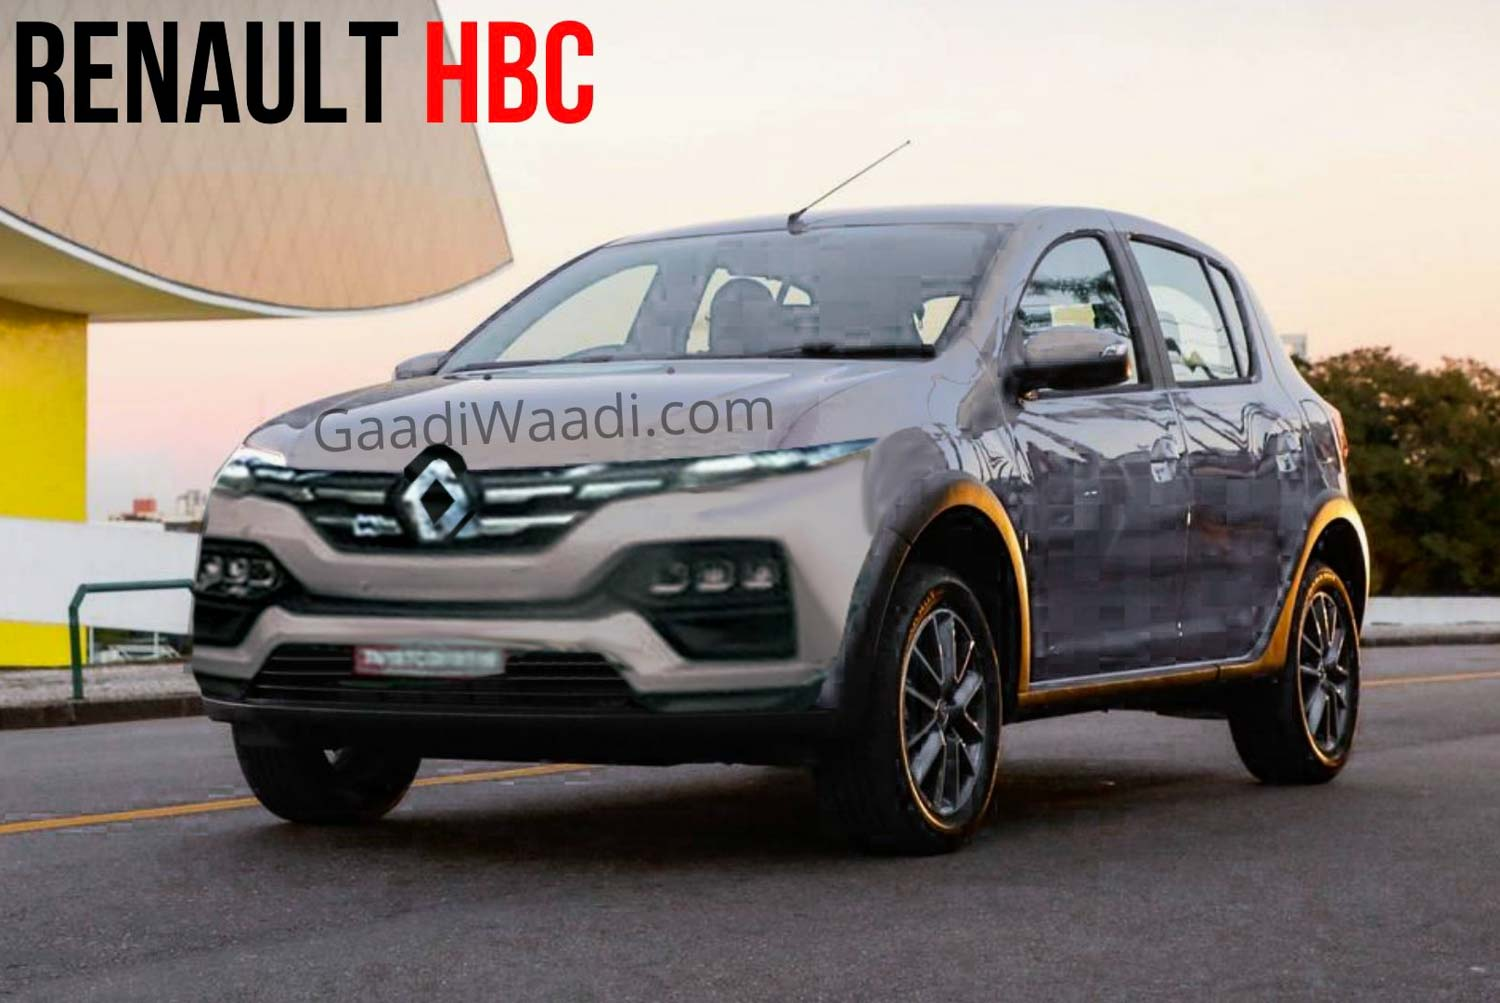 Upcoming Renault Kiger (HBC) Front Design Revealed In New Spy Shot